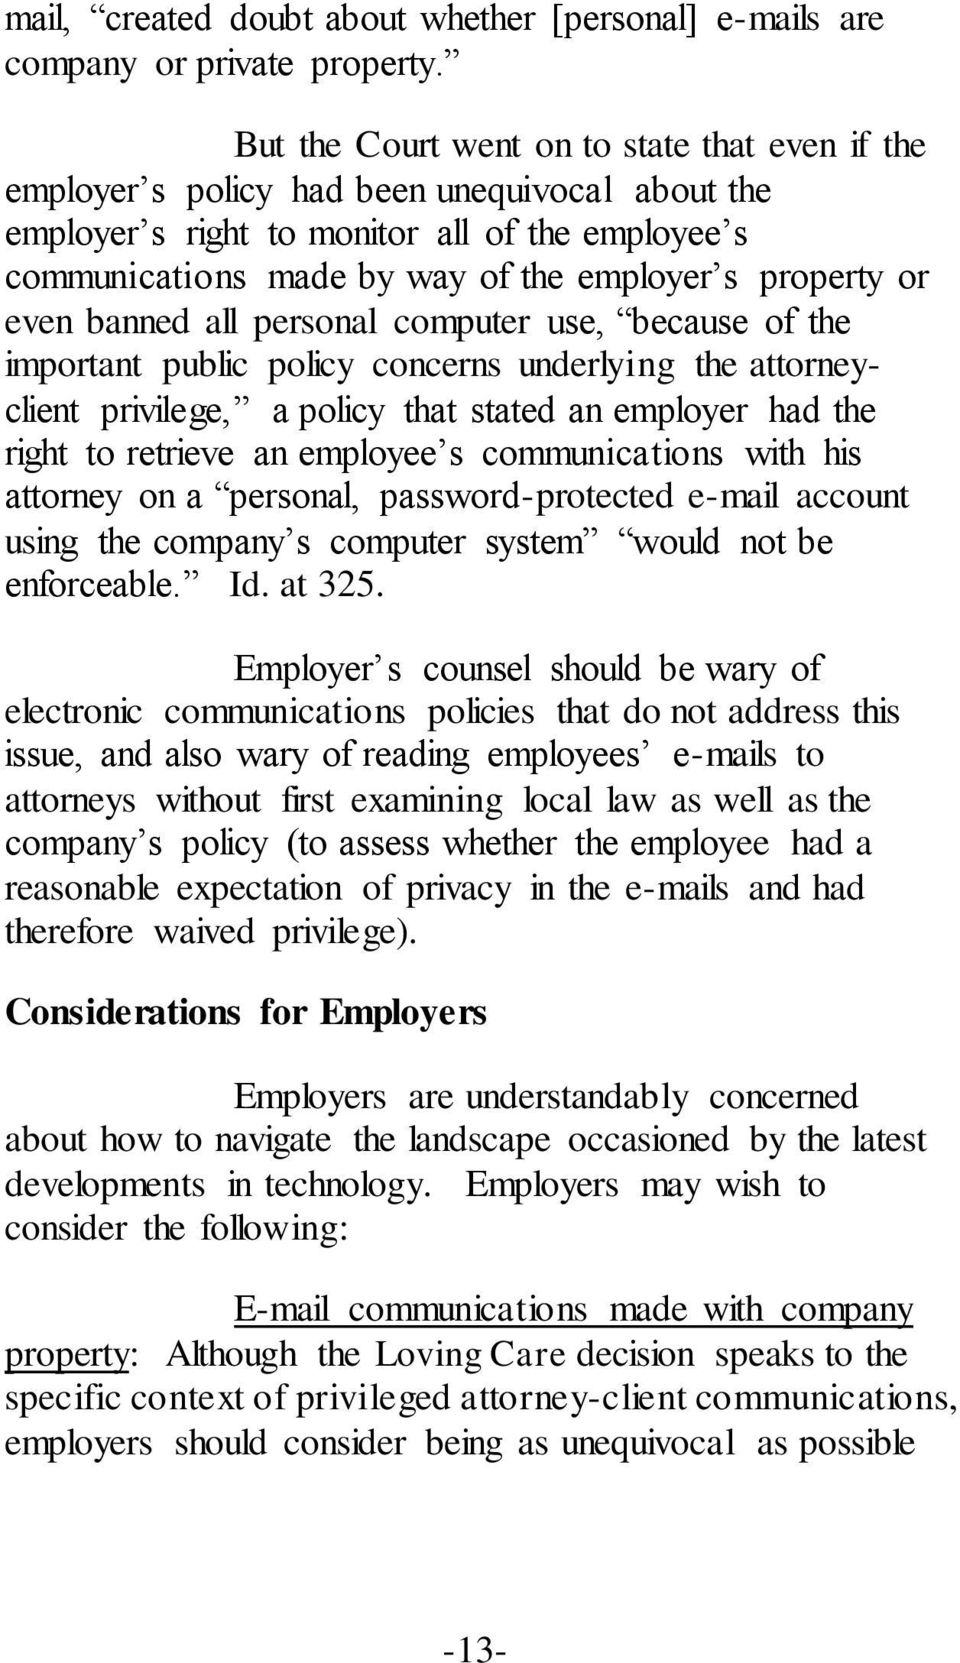 property or even banned all personal computer use, because of the important public policy concerns underlying the attorneyclient privilege, a policy that stated an employer had the right to retrieve